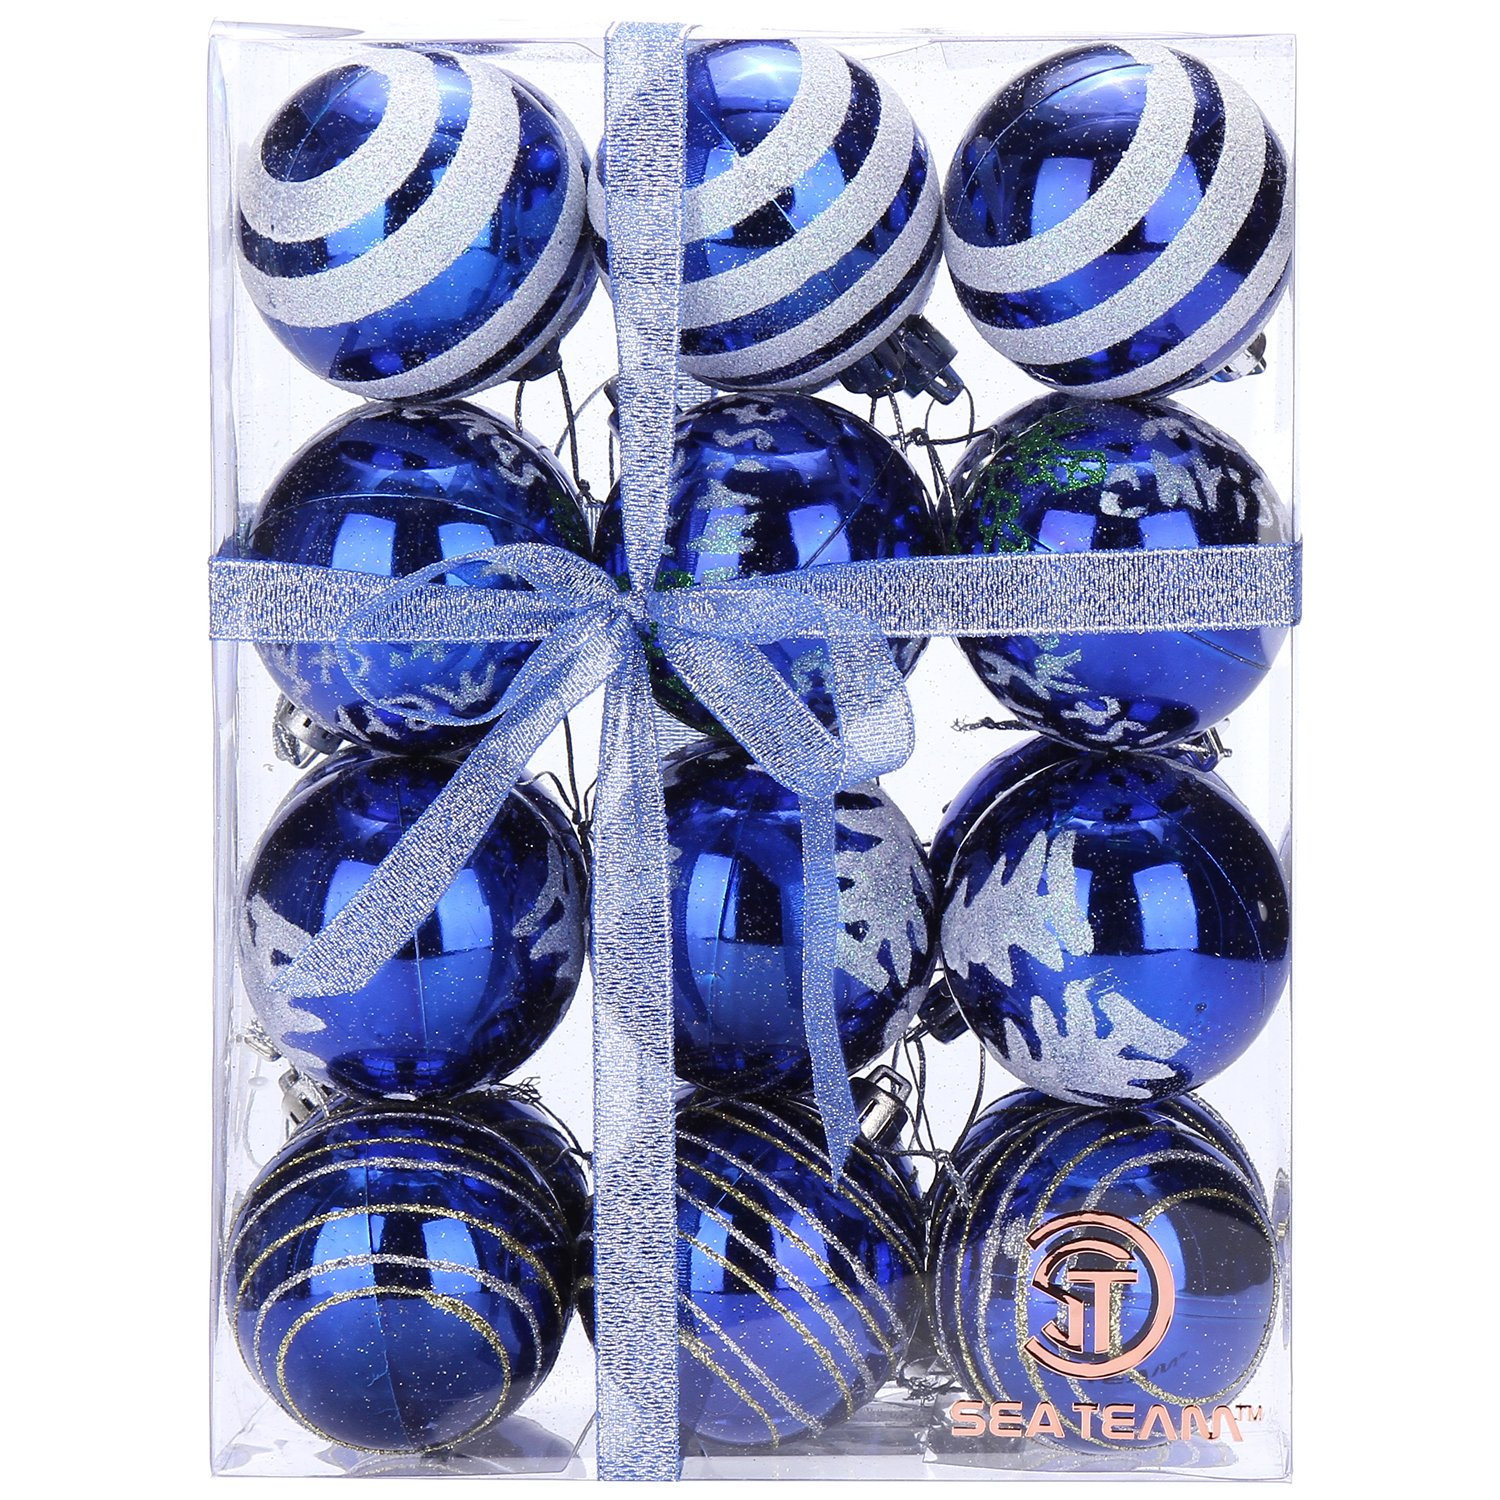 Sea Team 60mm/2.36 Delicate Painting and Glittering Shatterproof Christmas Balls Decorative Hanging Christmas Ornaments Baubles Set for Xmas Tree - 24 Counts Blue